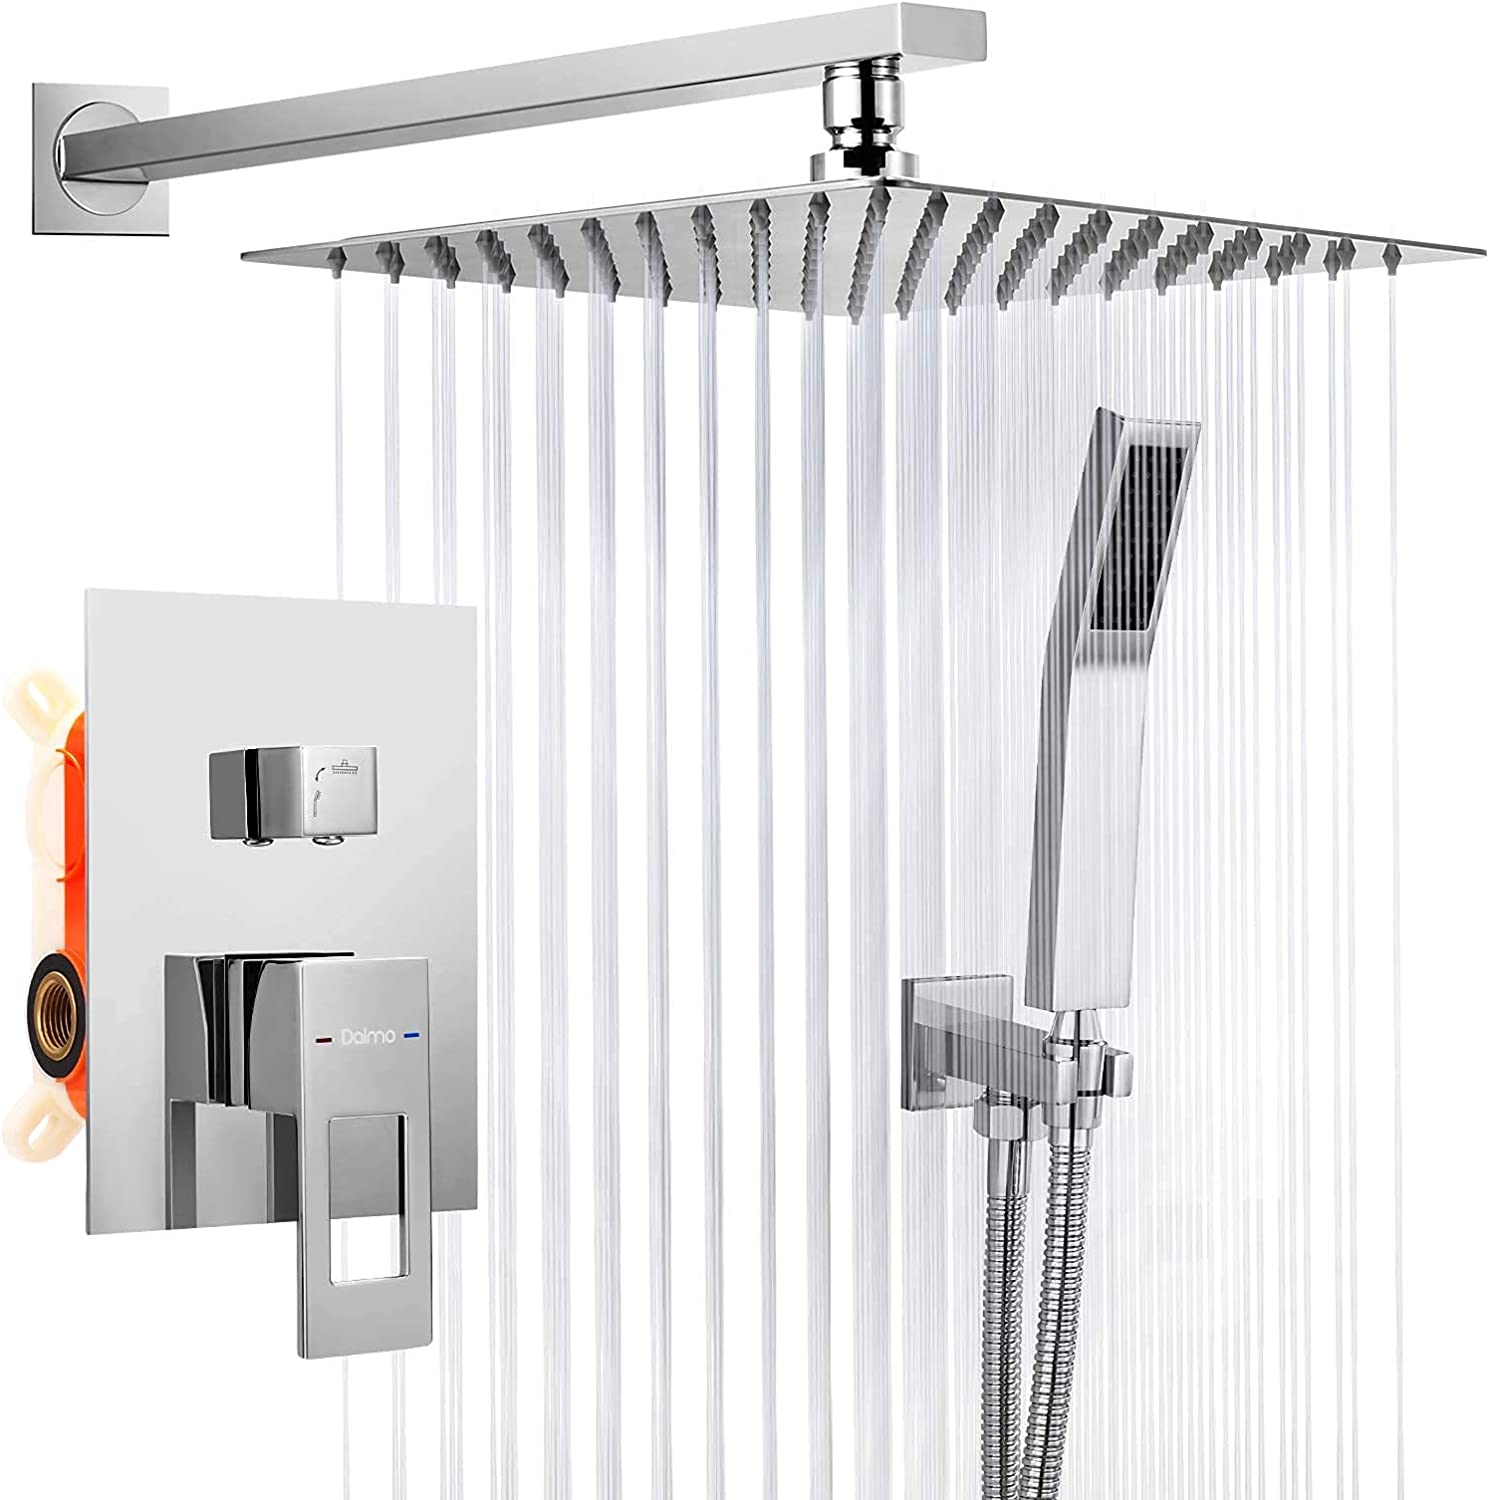 Buy Dalmo Shower System Wall Mounted, 20 Inches Shower Faucet Set ...